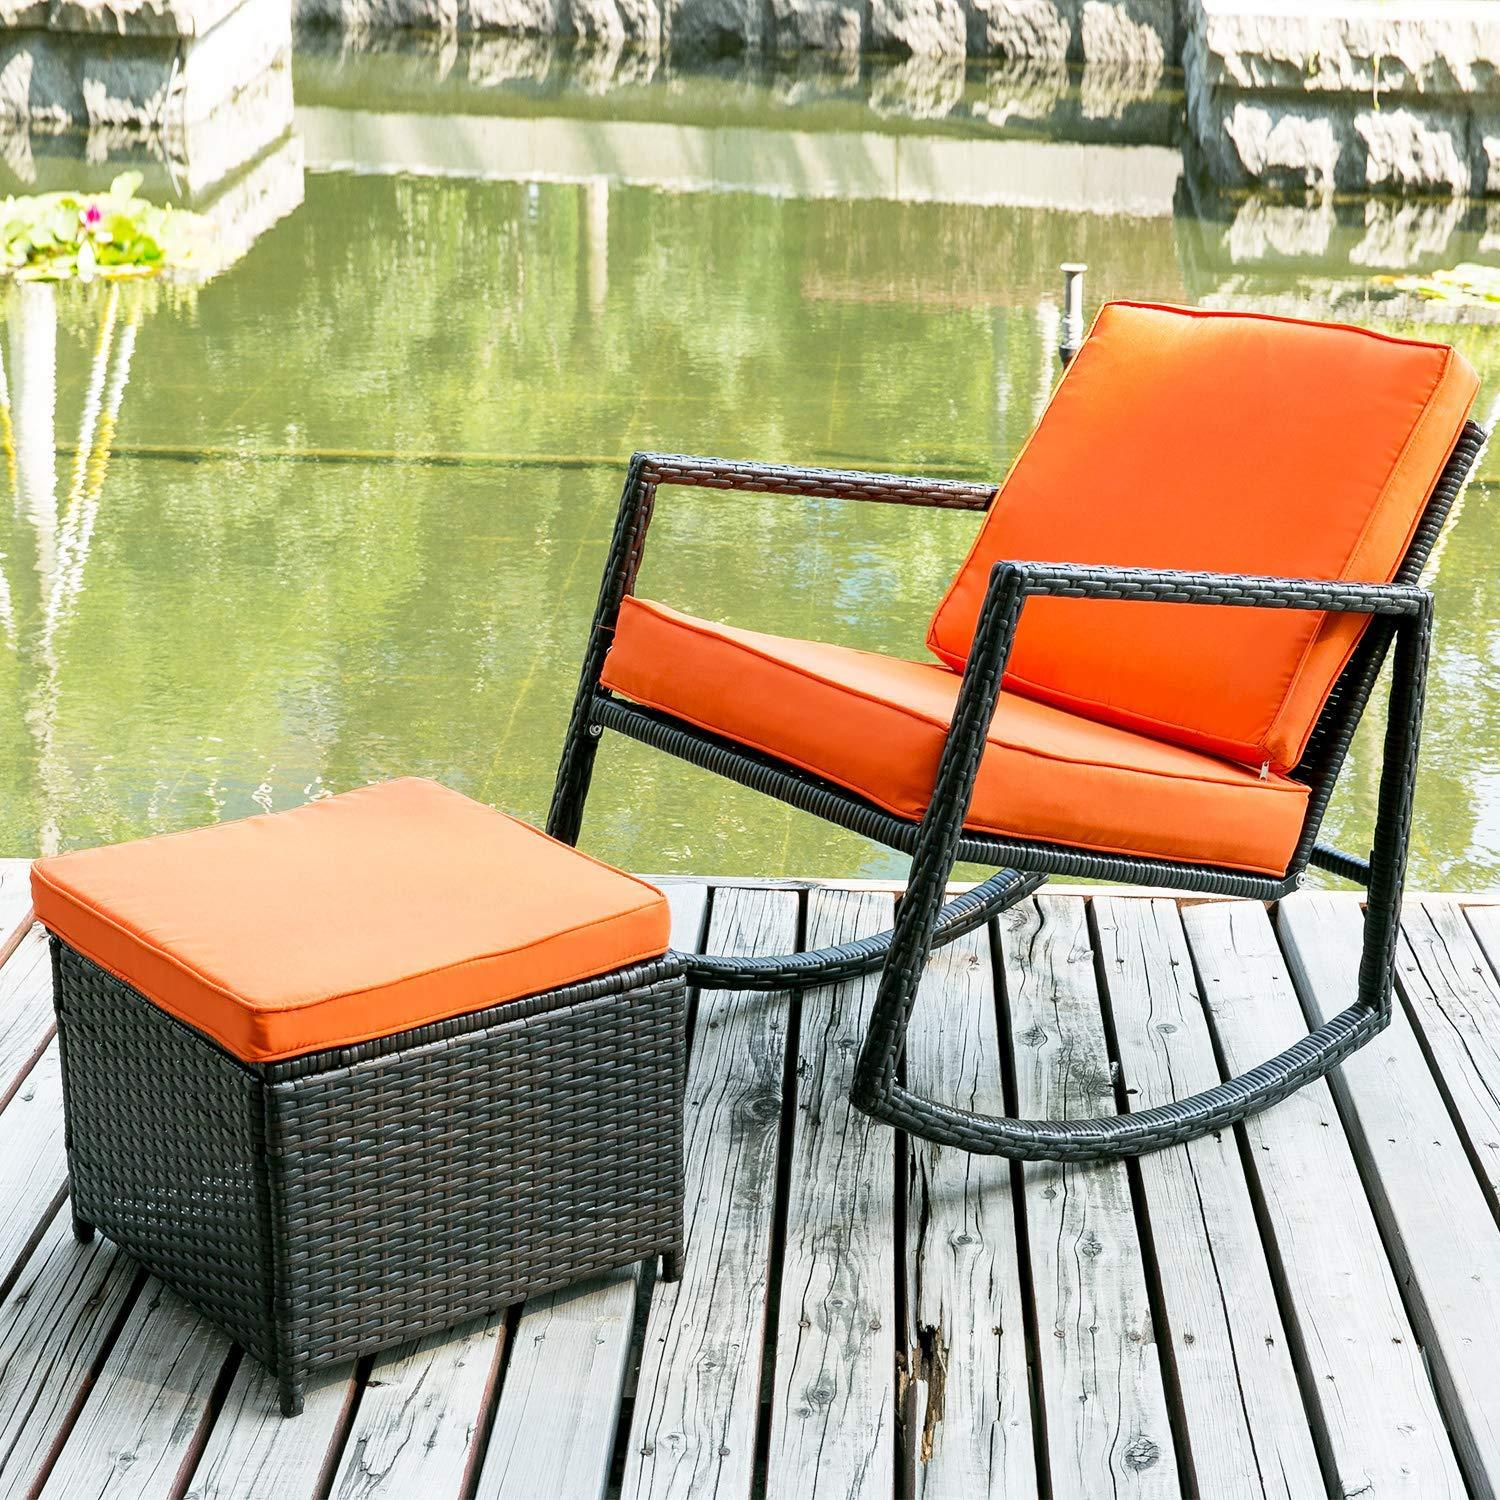 Swell Merax Patio Wicker Rocking Armed Outdoor Garden Lounge Ottoman Rattan Rocker Chair Lazy Sofa Dailytribune Chair Design For Home Dailytribuneorg